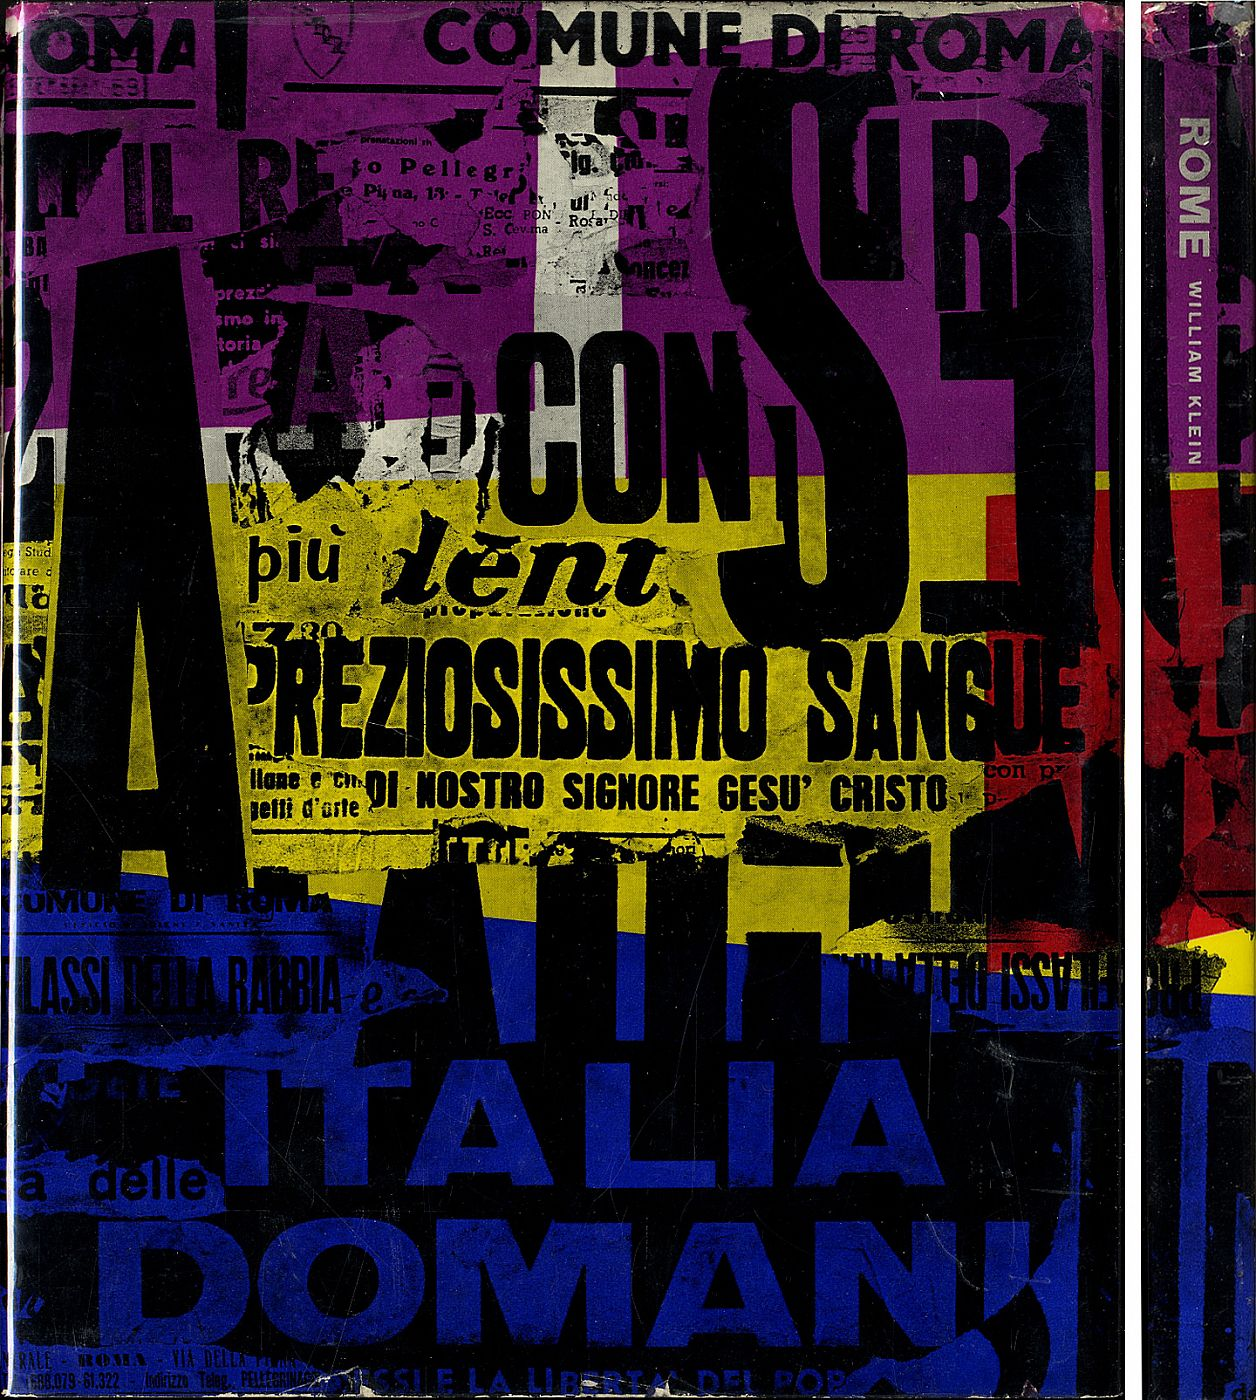 William Klein: Rome (Roma): The City and Its People (First French Edition) [PRESENTATION COPY: SIGNED, INSCRIBED & DATED in 1959, the Year of Publication]